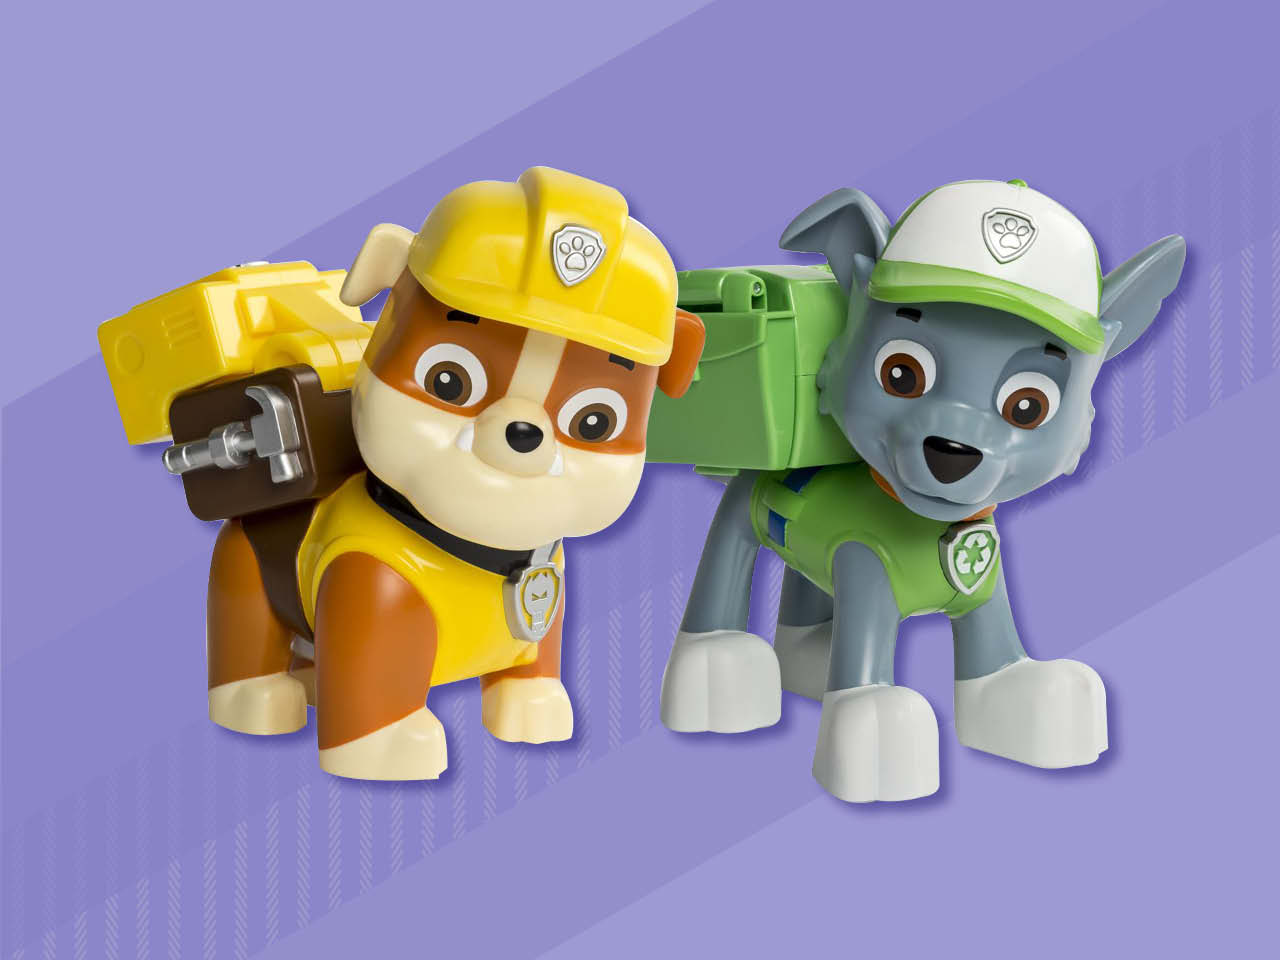 Paw patrol character toys